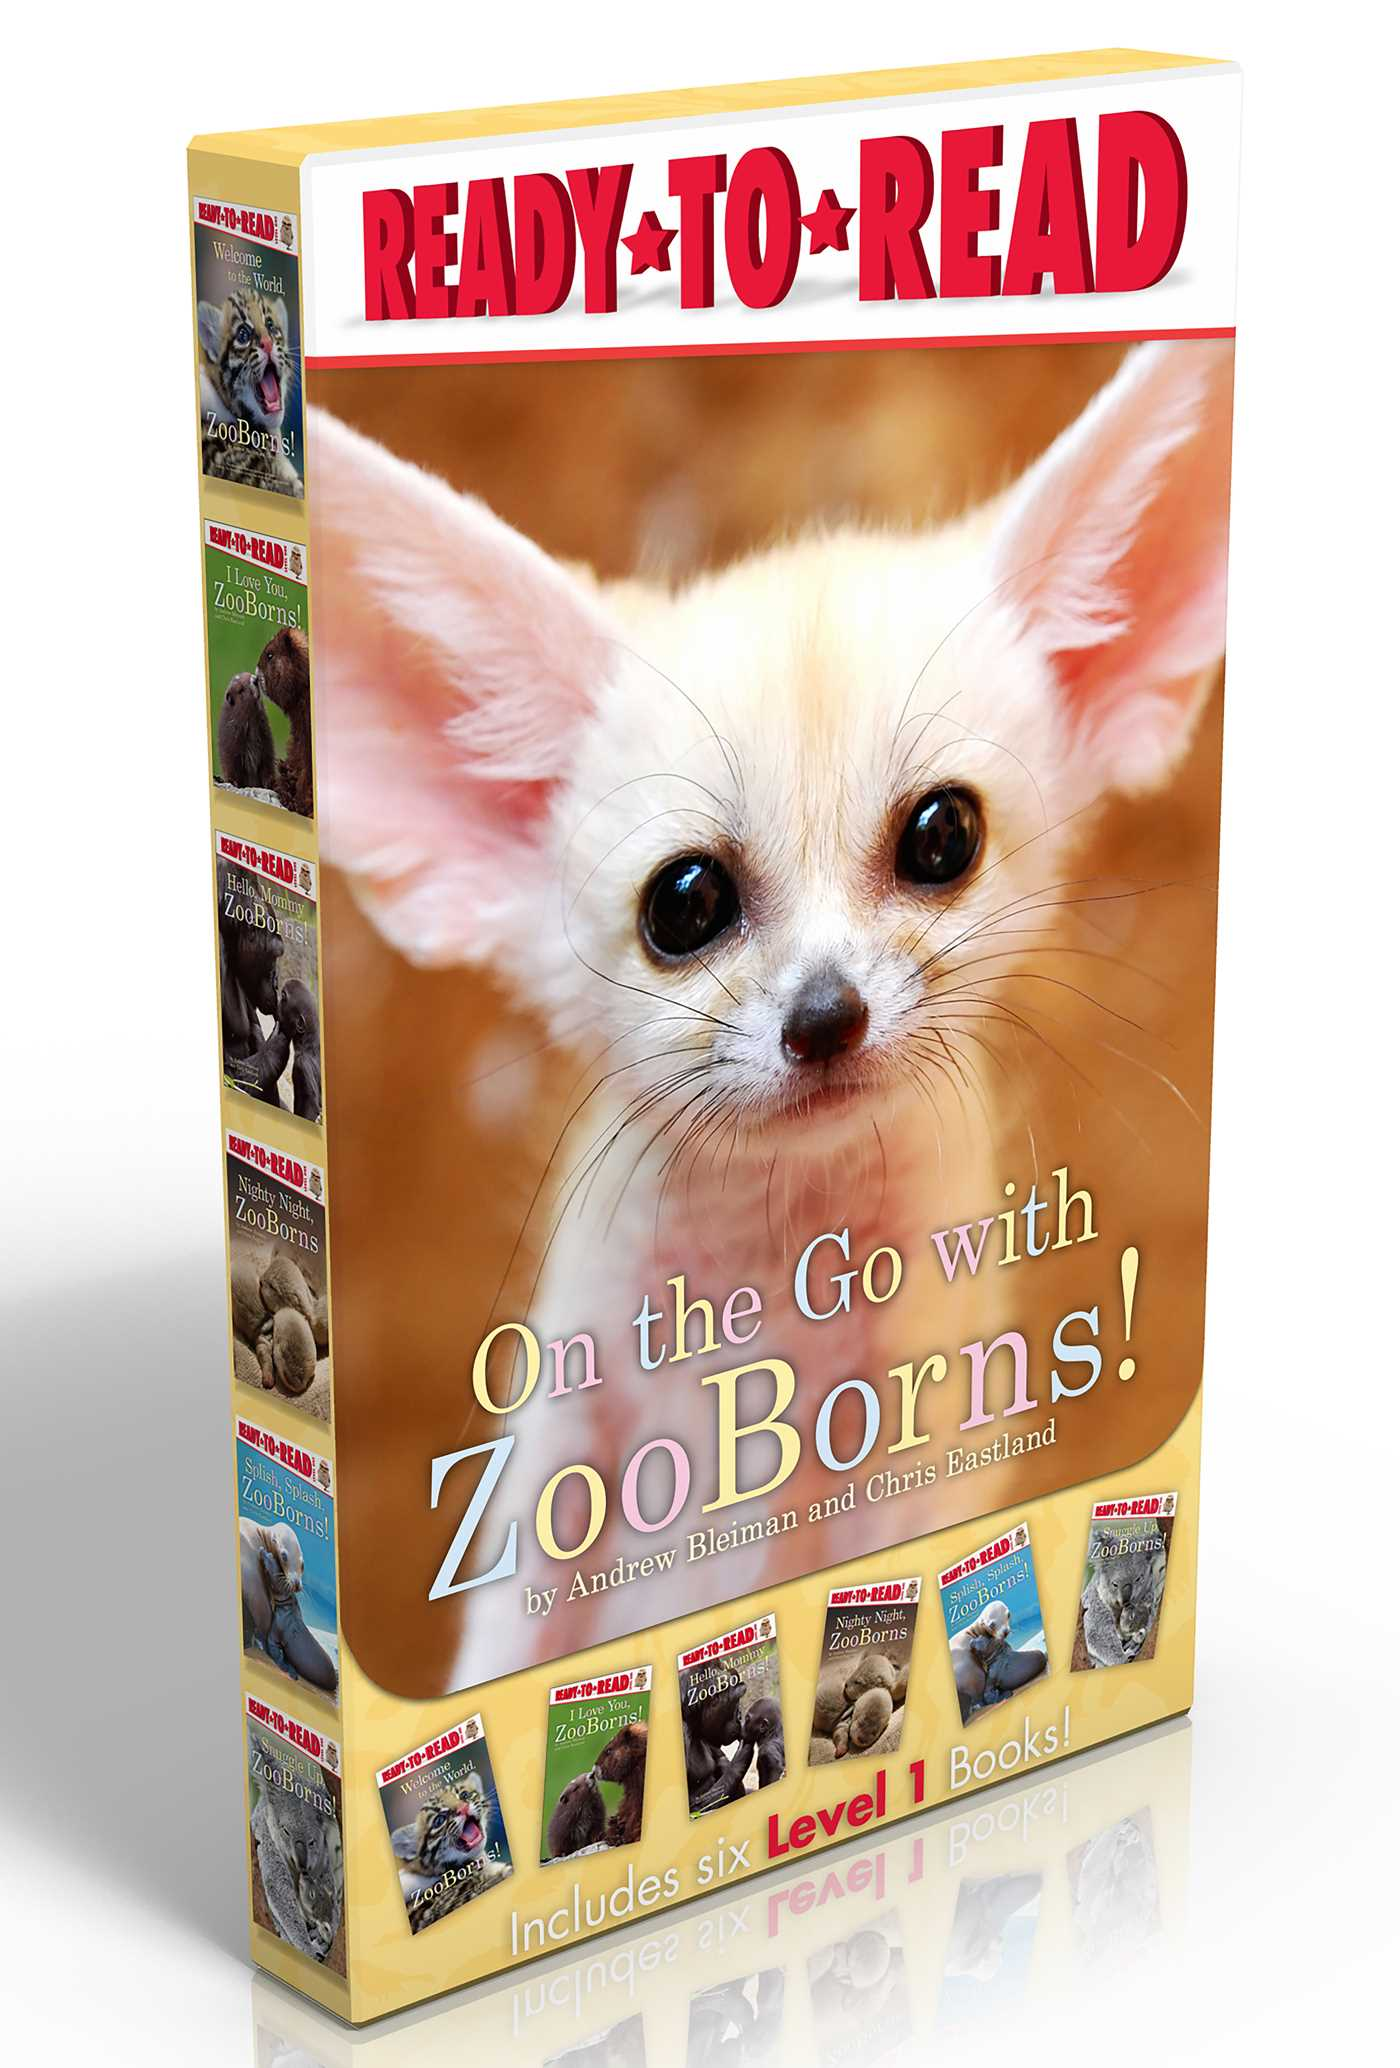 On the go with zooborns 9781481452205 hr